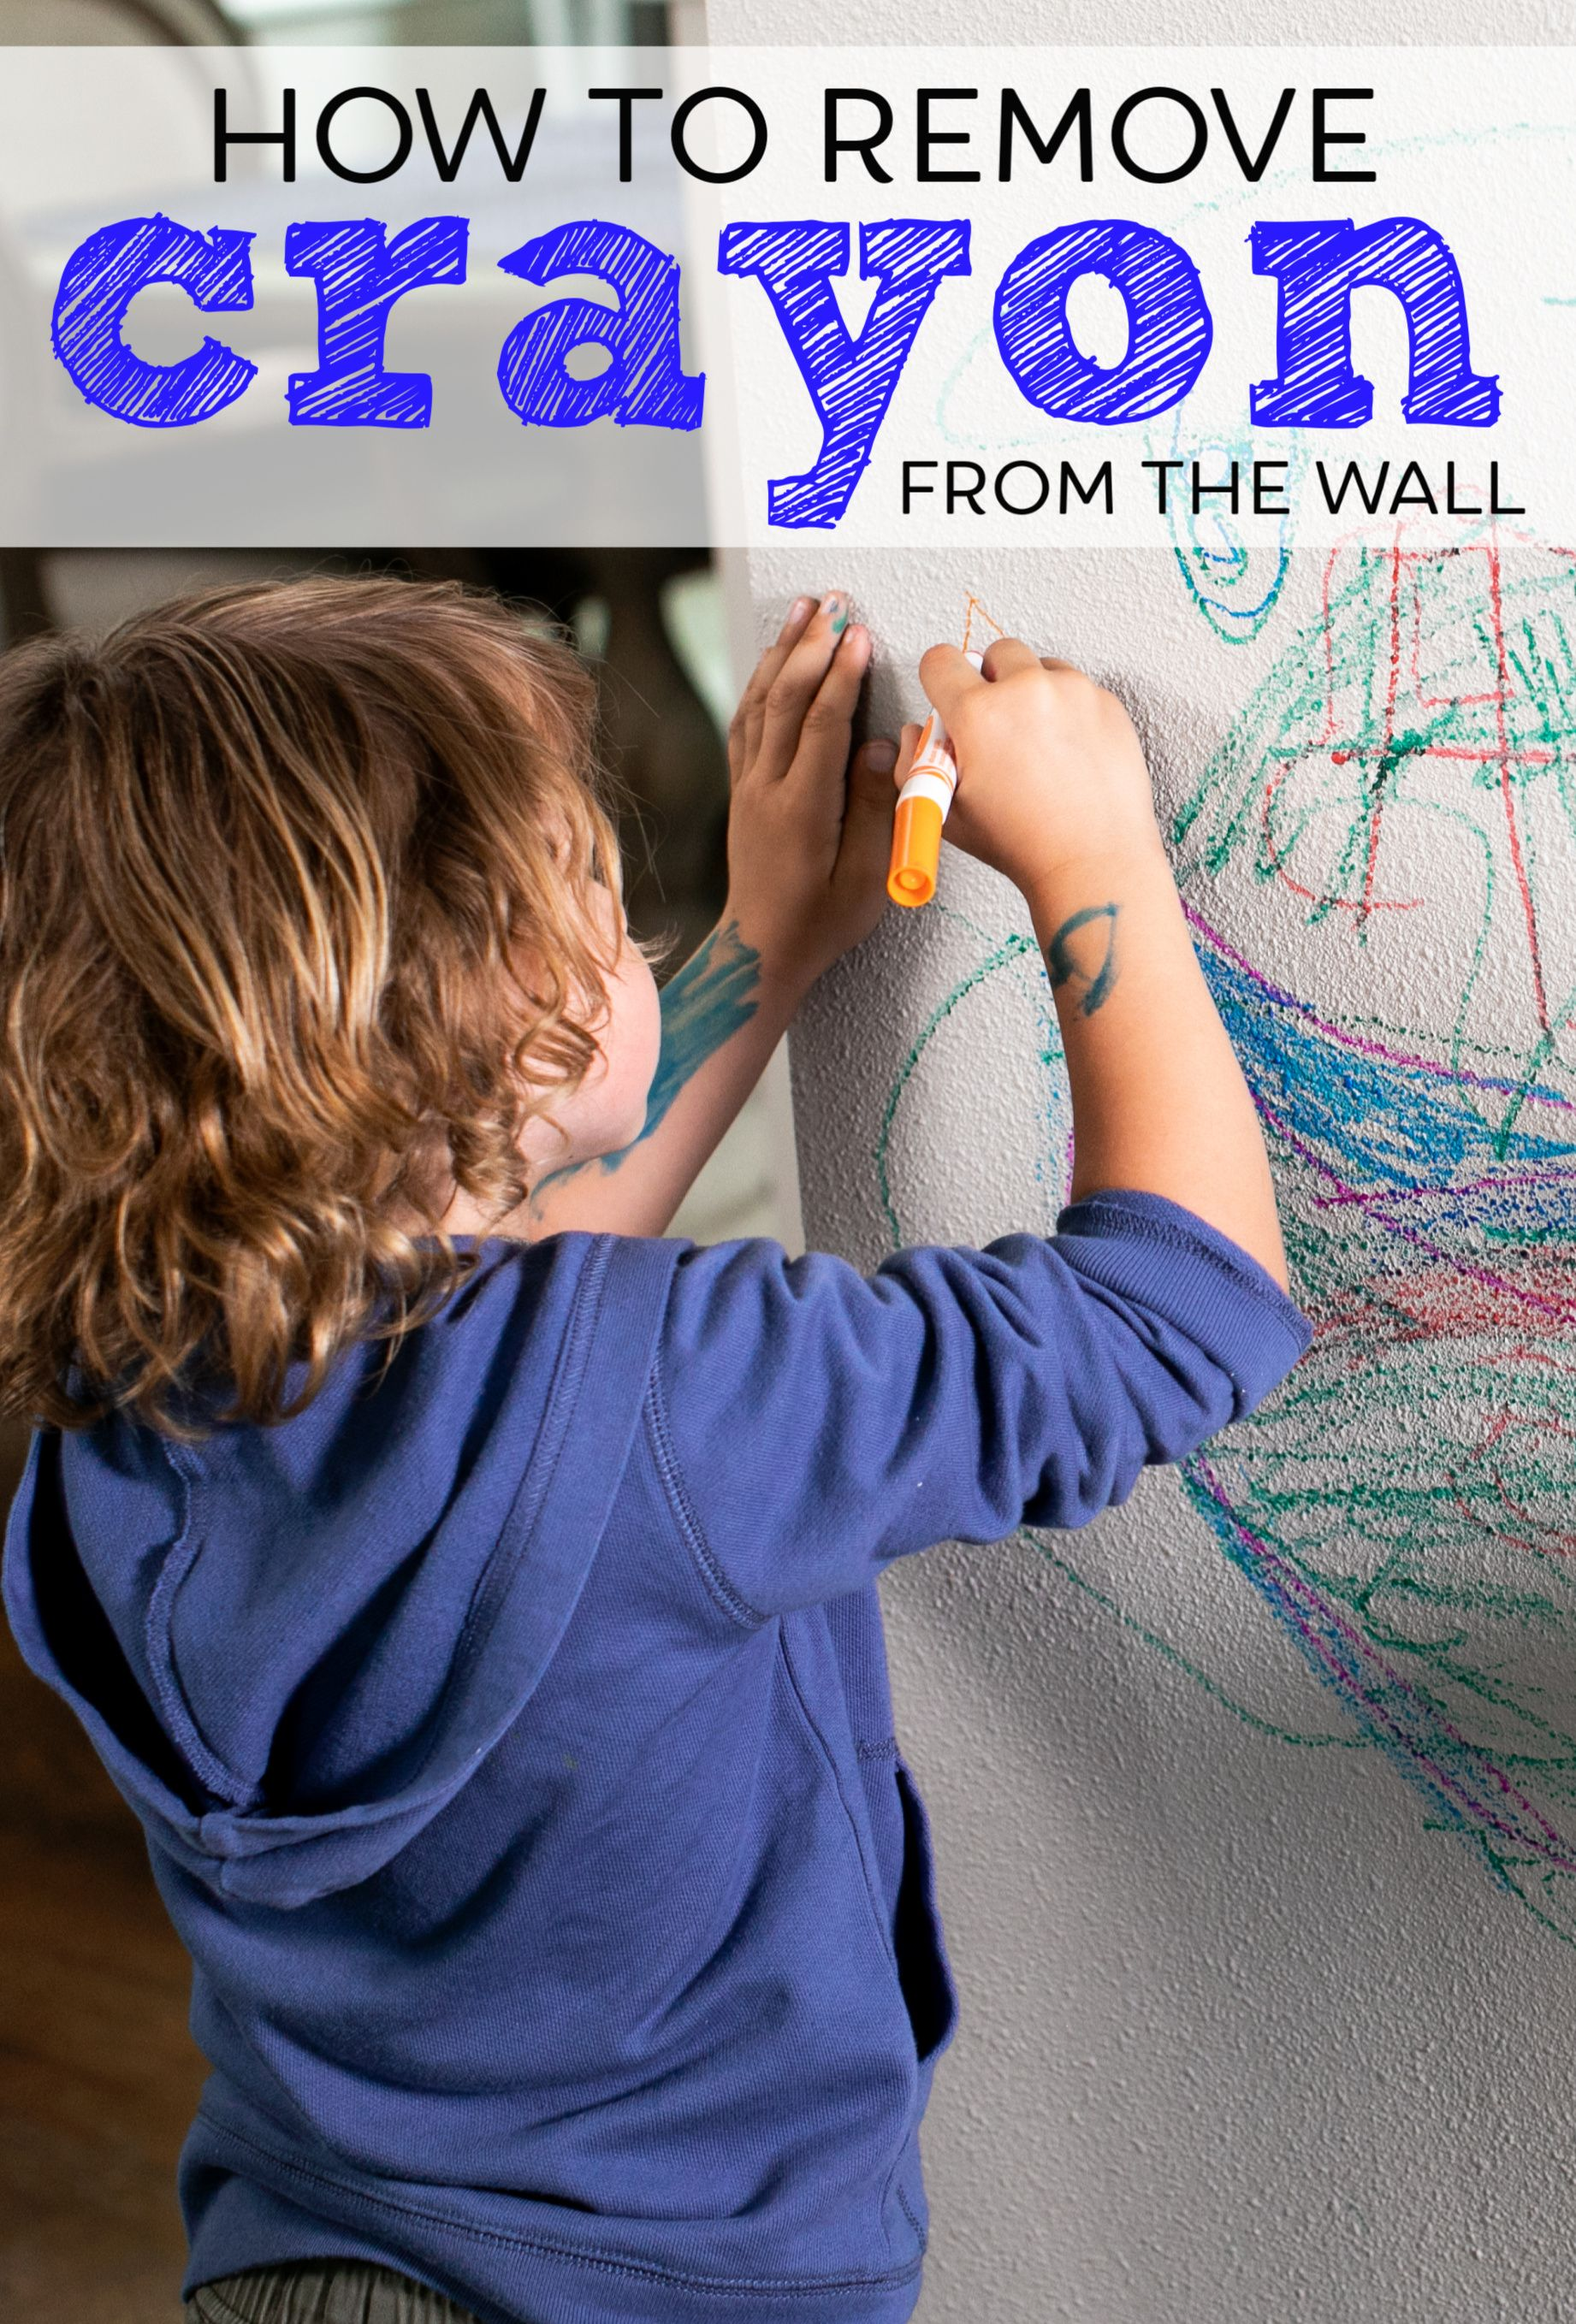 How To Get Crayon Off Walls In 2020 Cleaning Hacks Removing